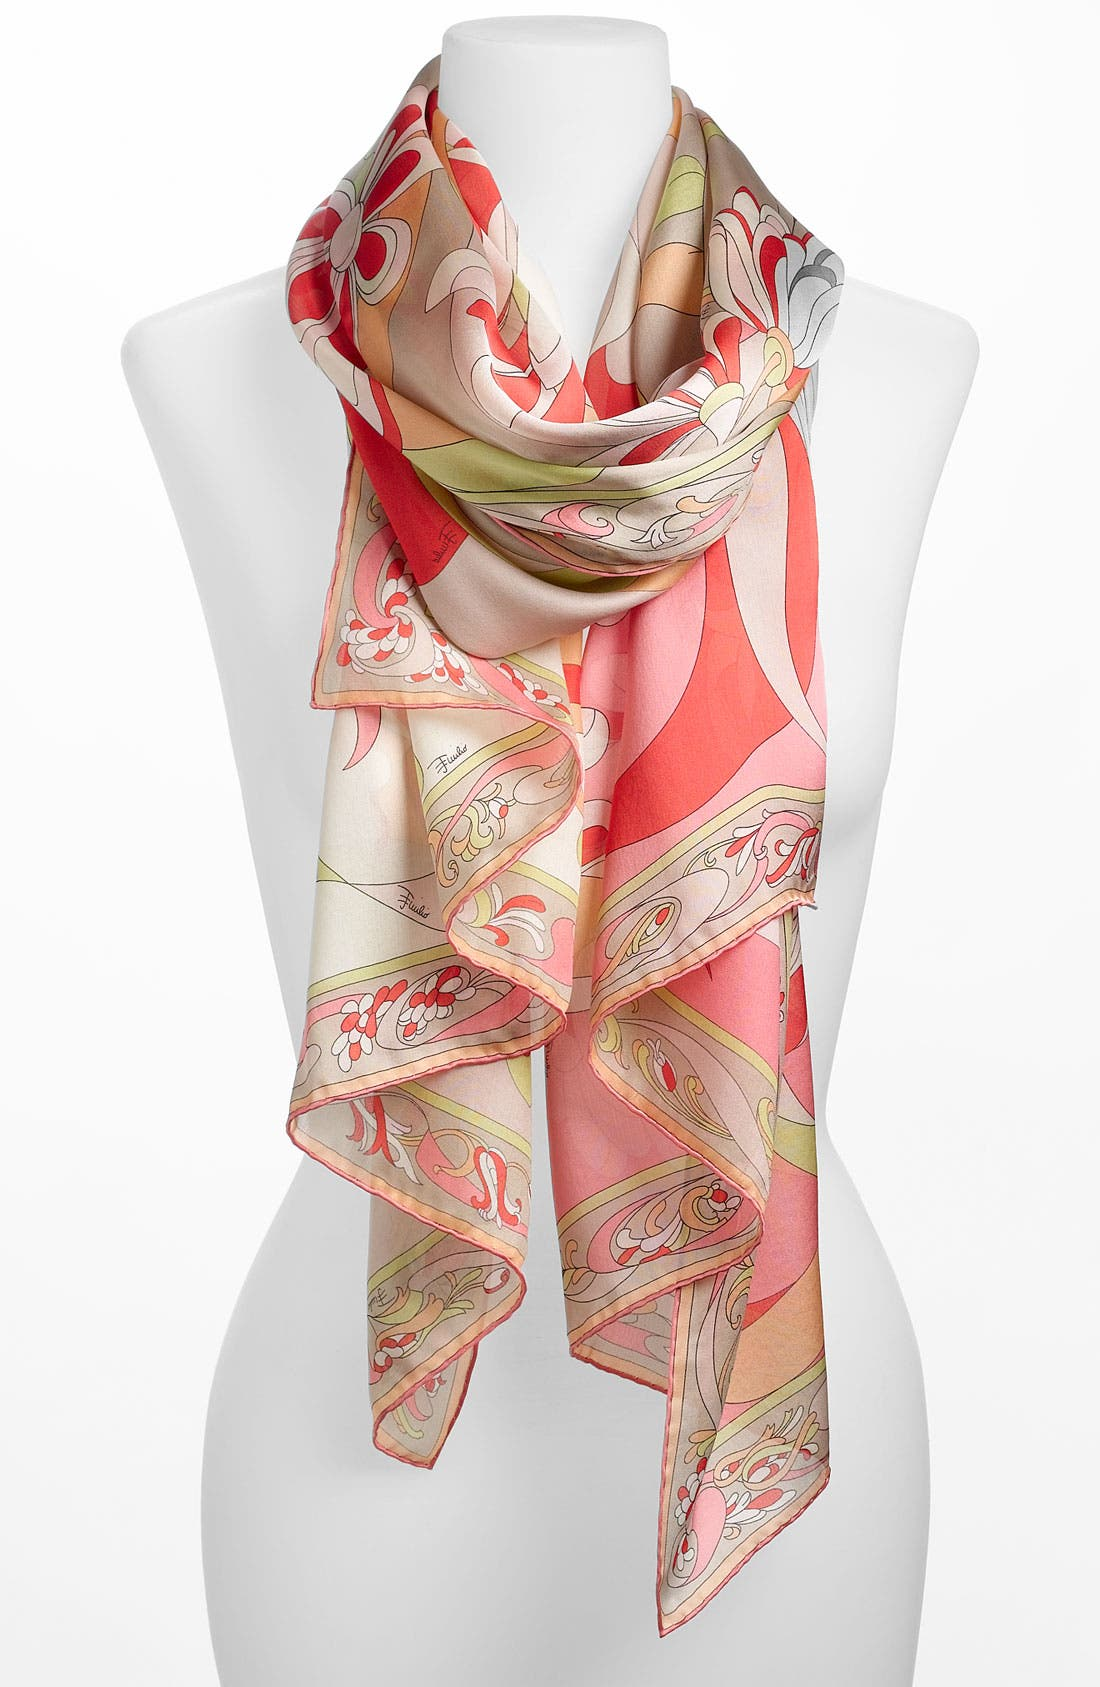 Alternate Image 1 Selected - Emilio Pucci 'Evoluzioni' Silk Scarf